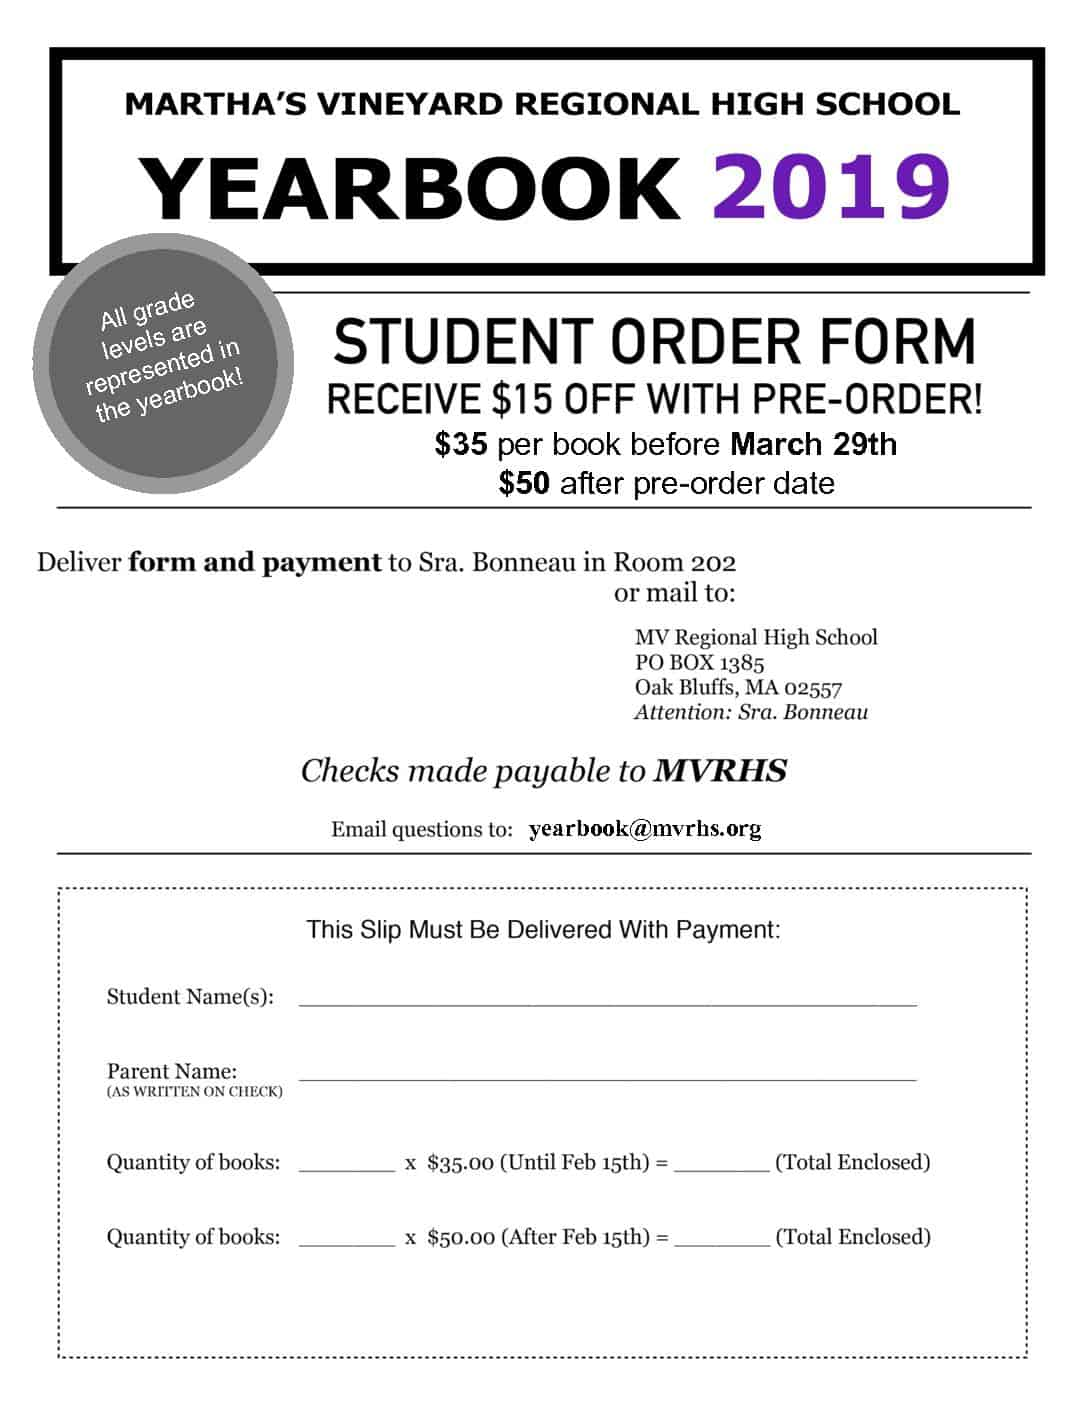 yearbook order form  5 Yearbook Order Form - MVRHS